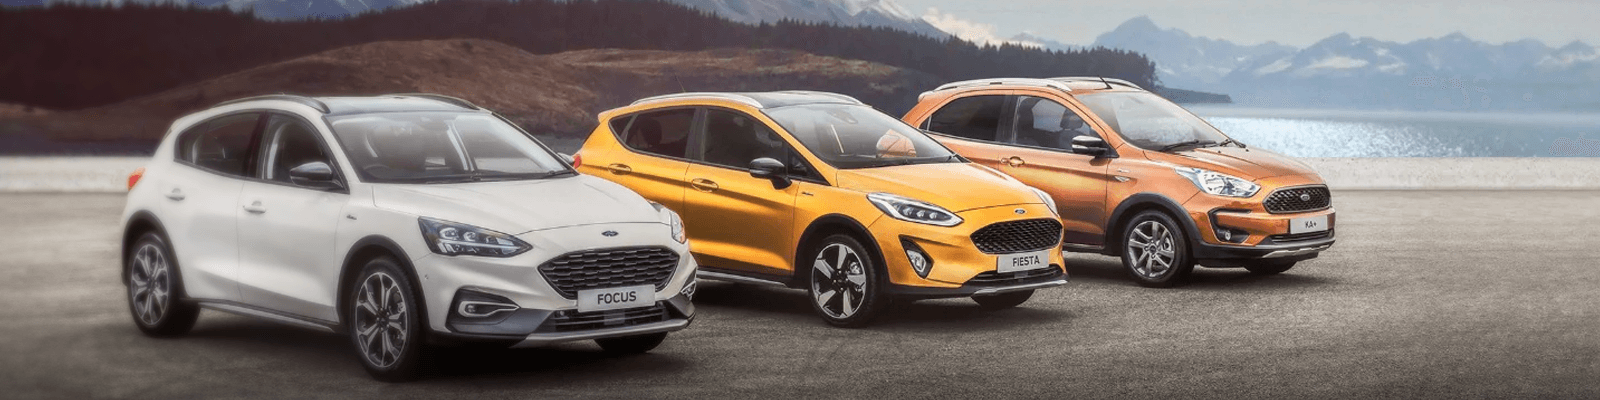 Used 2021 FORD Fiesta Cars for Sale in Meath - CarsIreland.ie